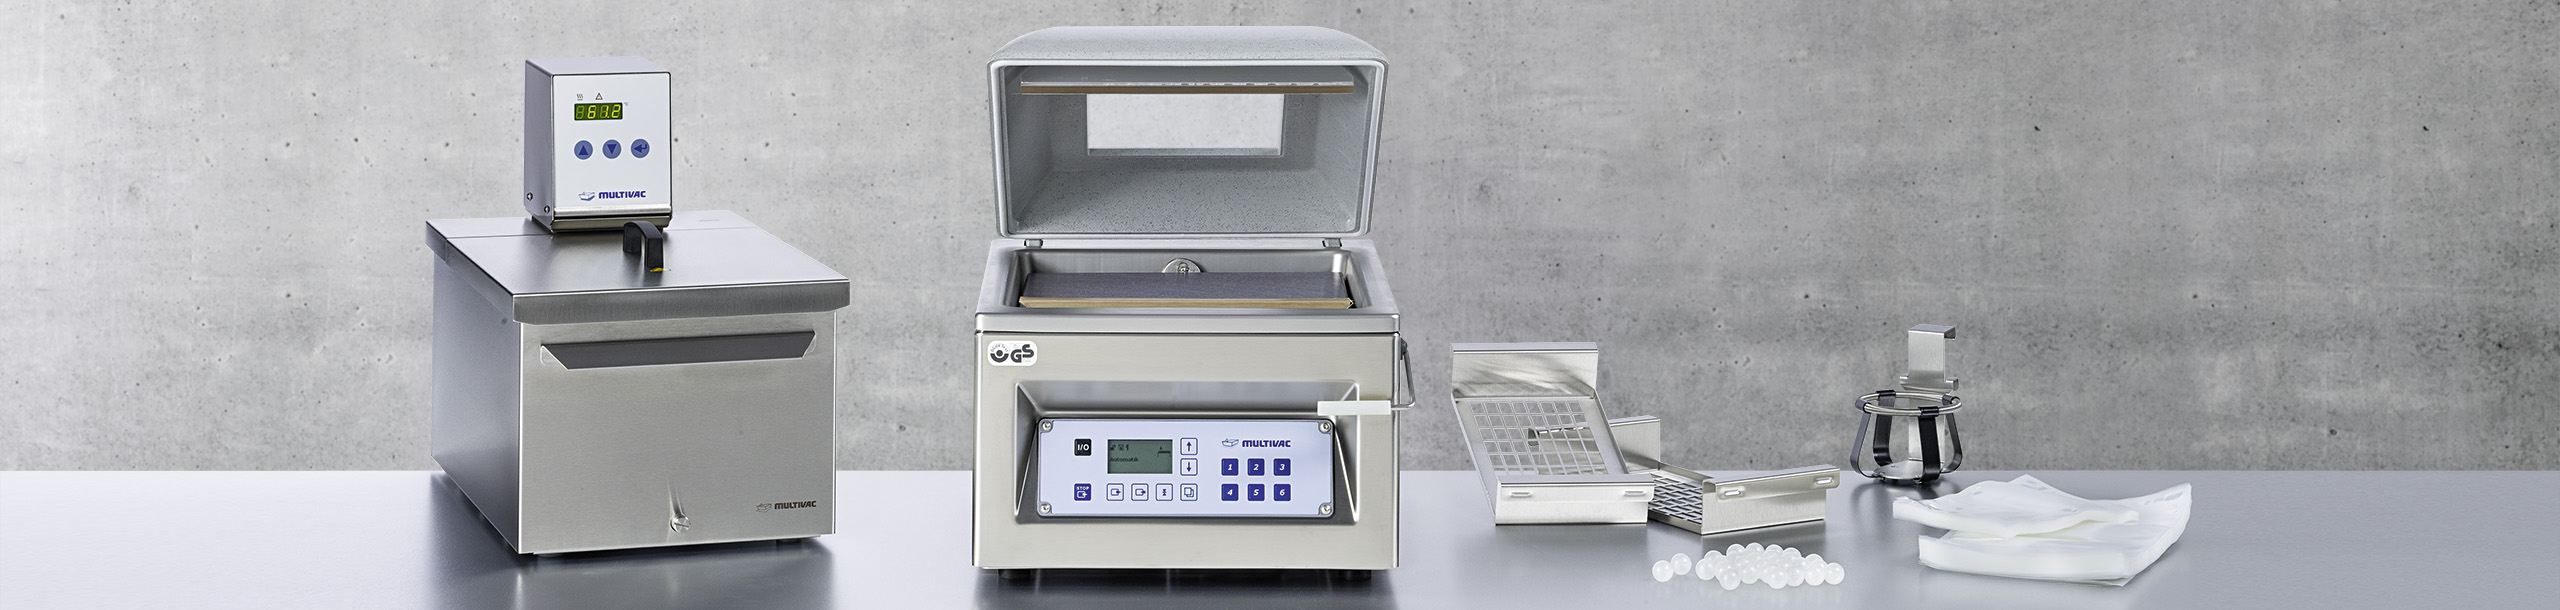 MULTIVAC sous vide products: vacuum chamber machines,  water bath with thermostat, pouches and accessories